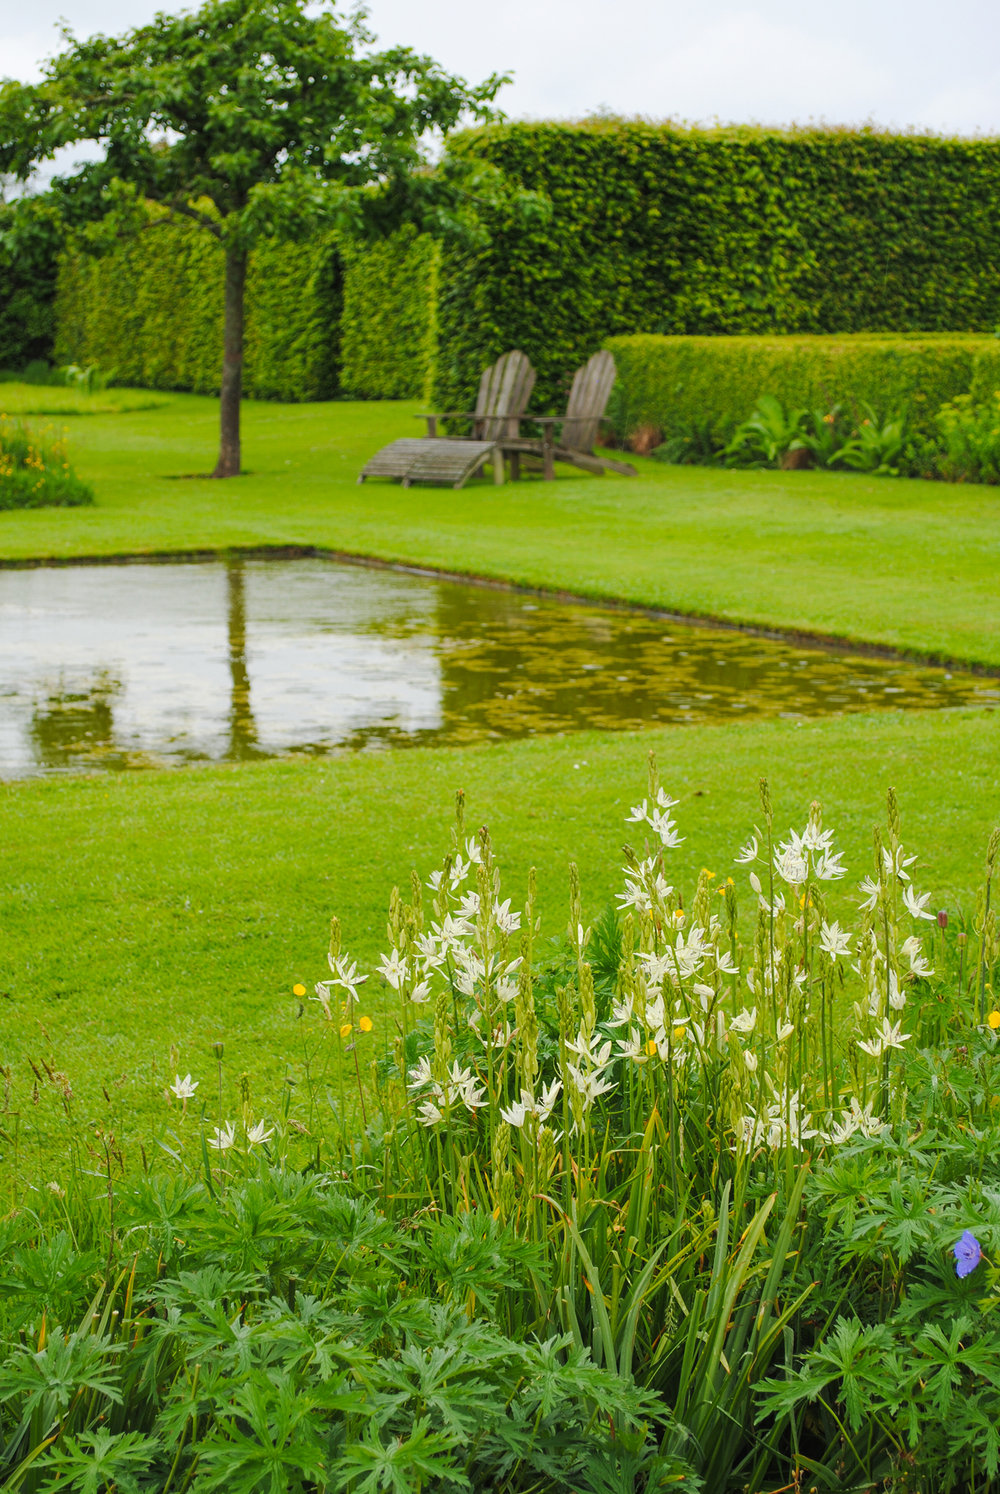 An apple tree is reflected in one of the small square ponds at Le Jardin Plume.  White Camassia (camas) flowers in the forefront.